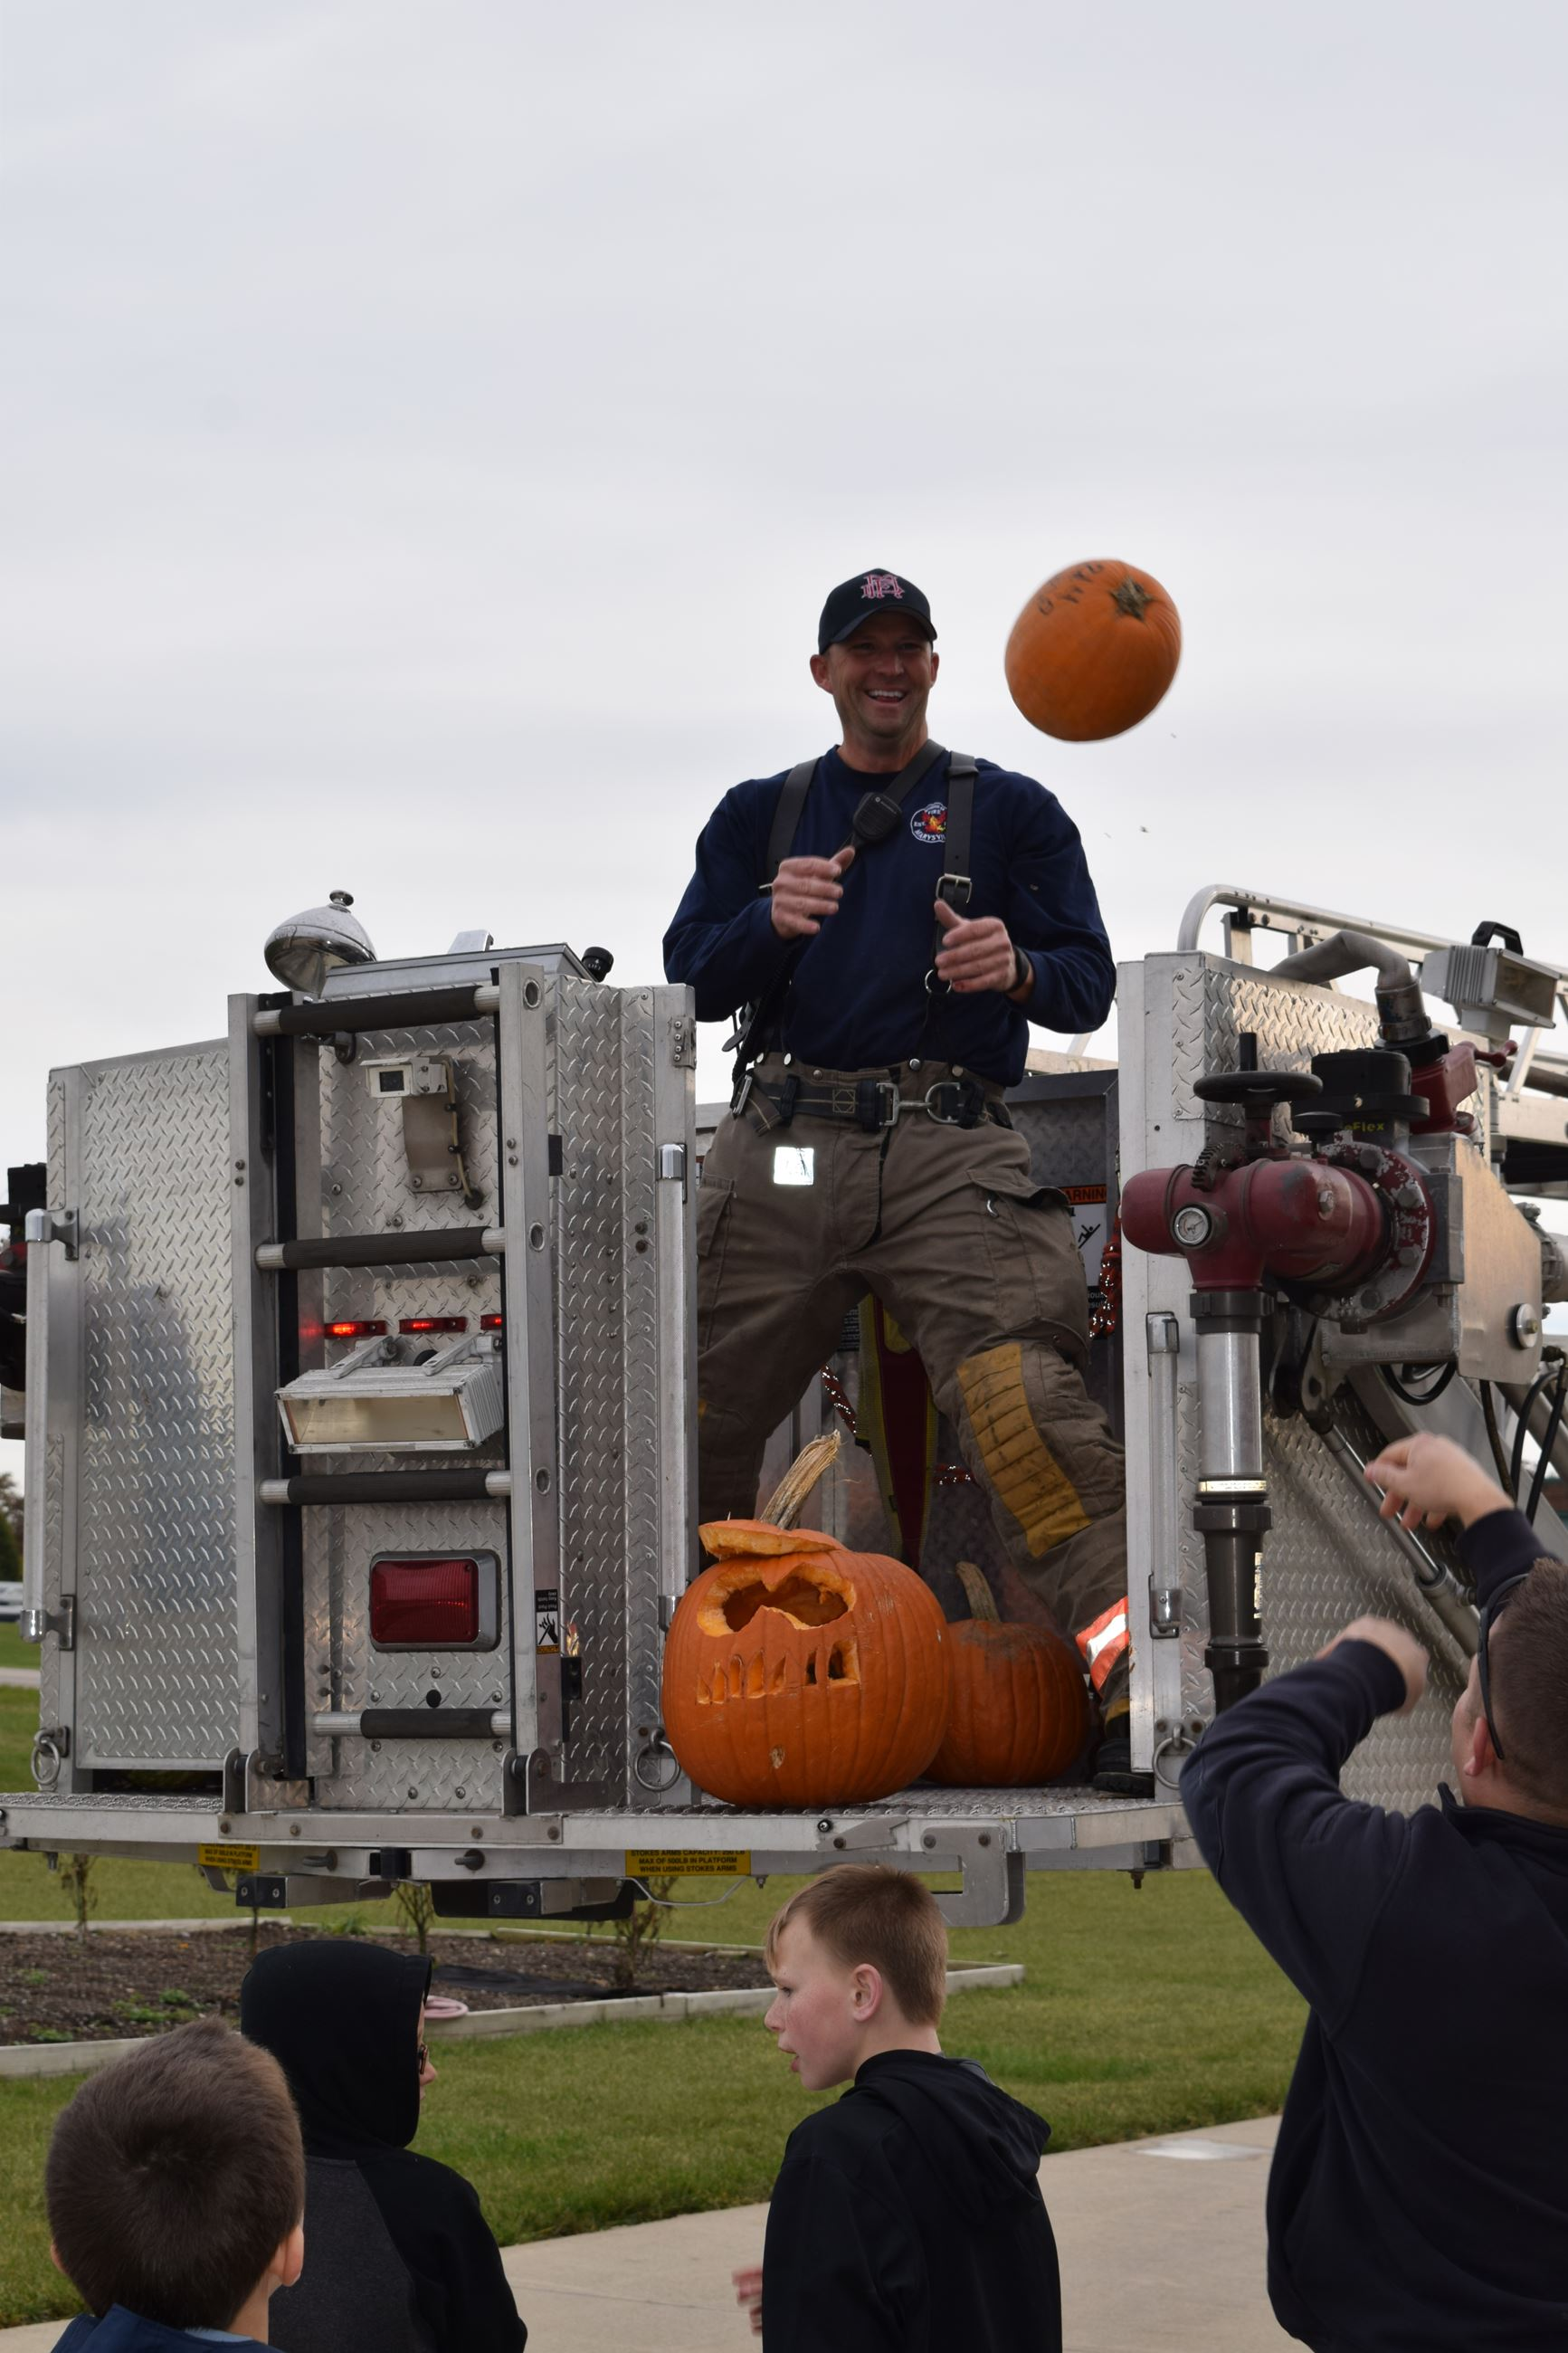 Photo of Firefighters loading pumpkins onto fire truck